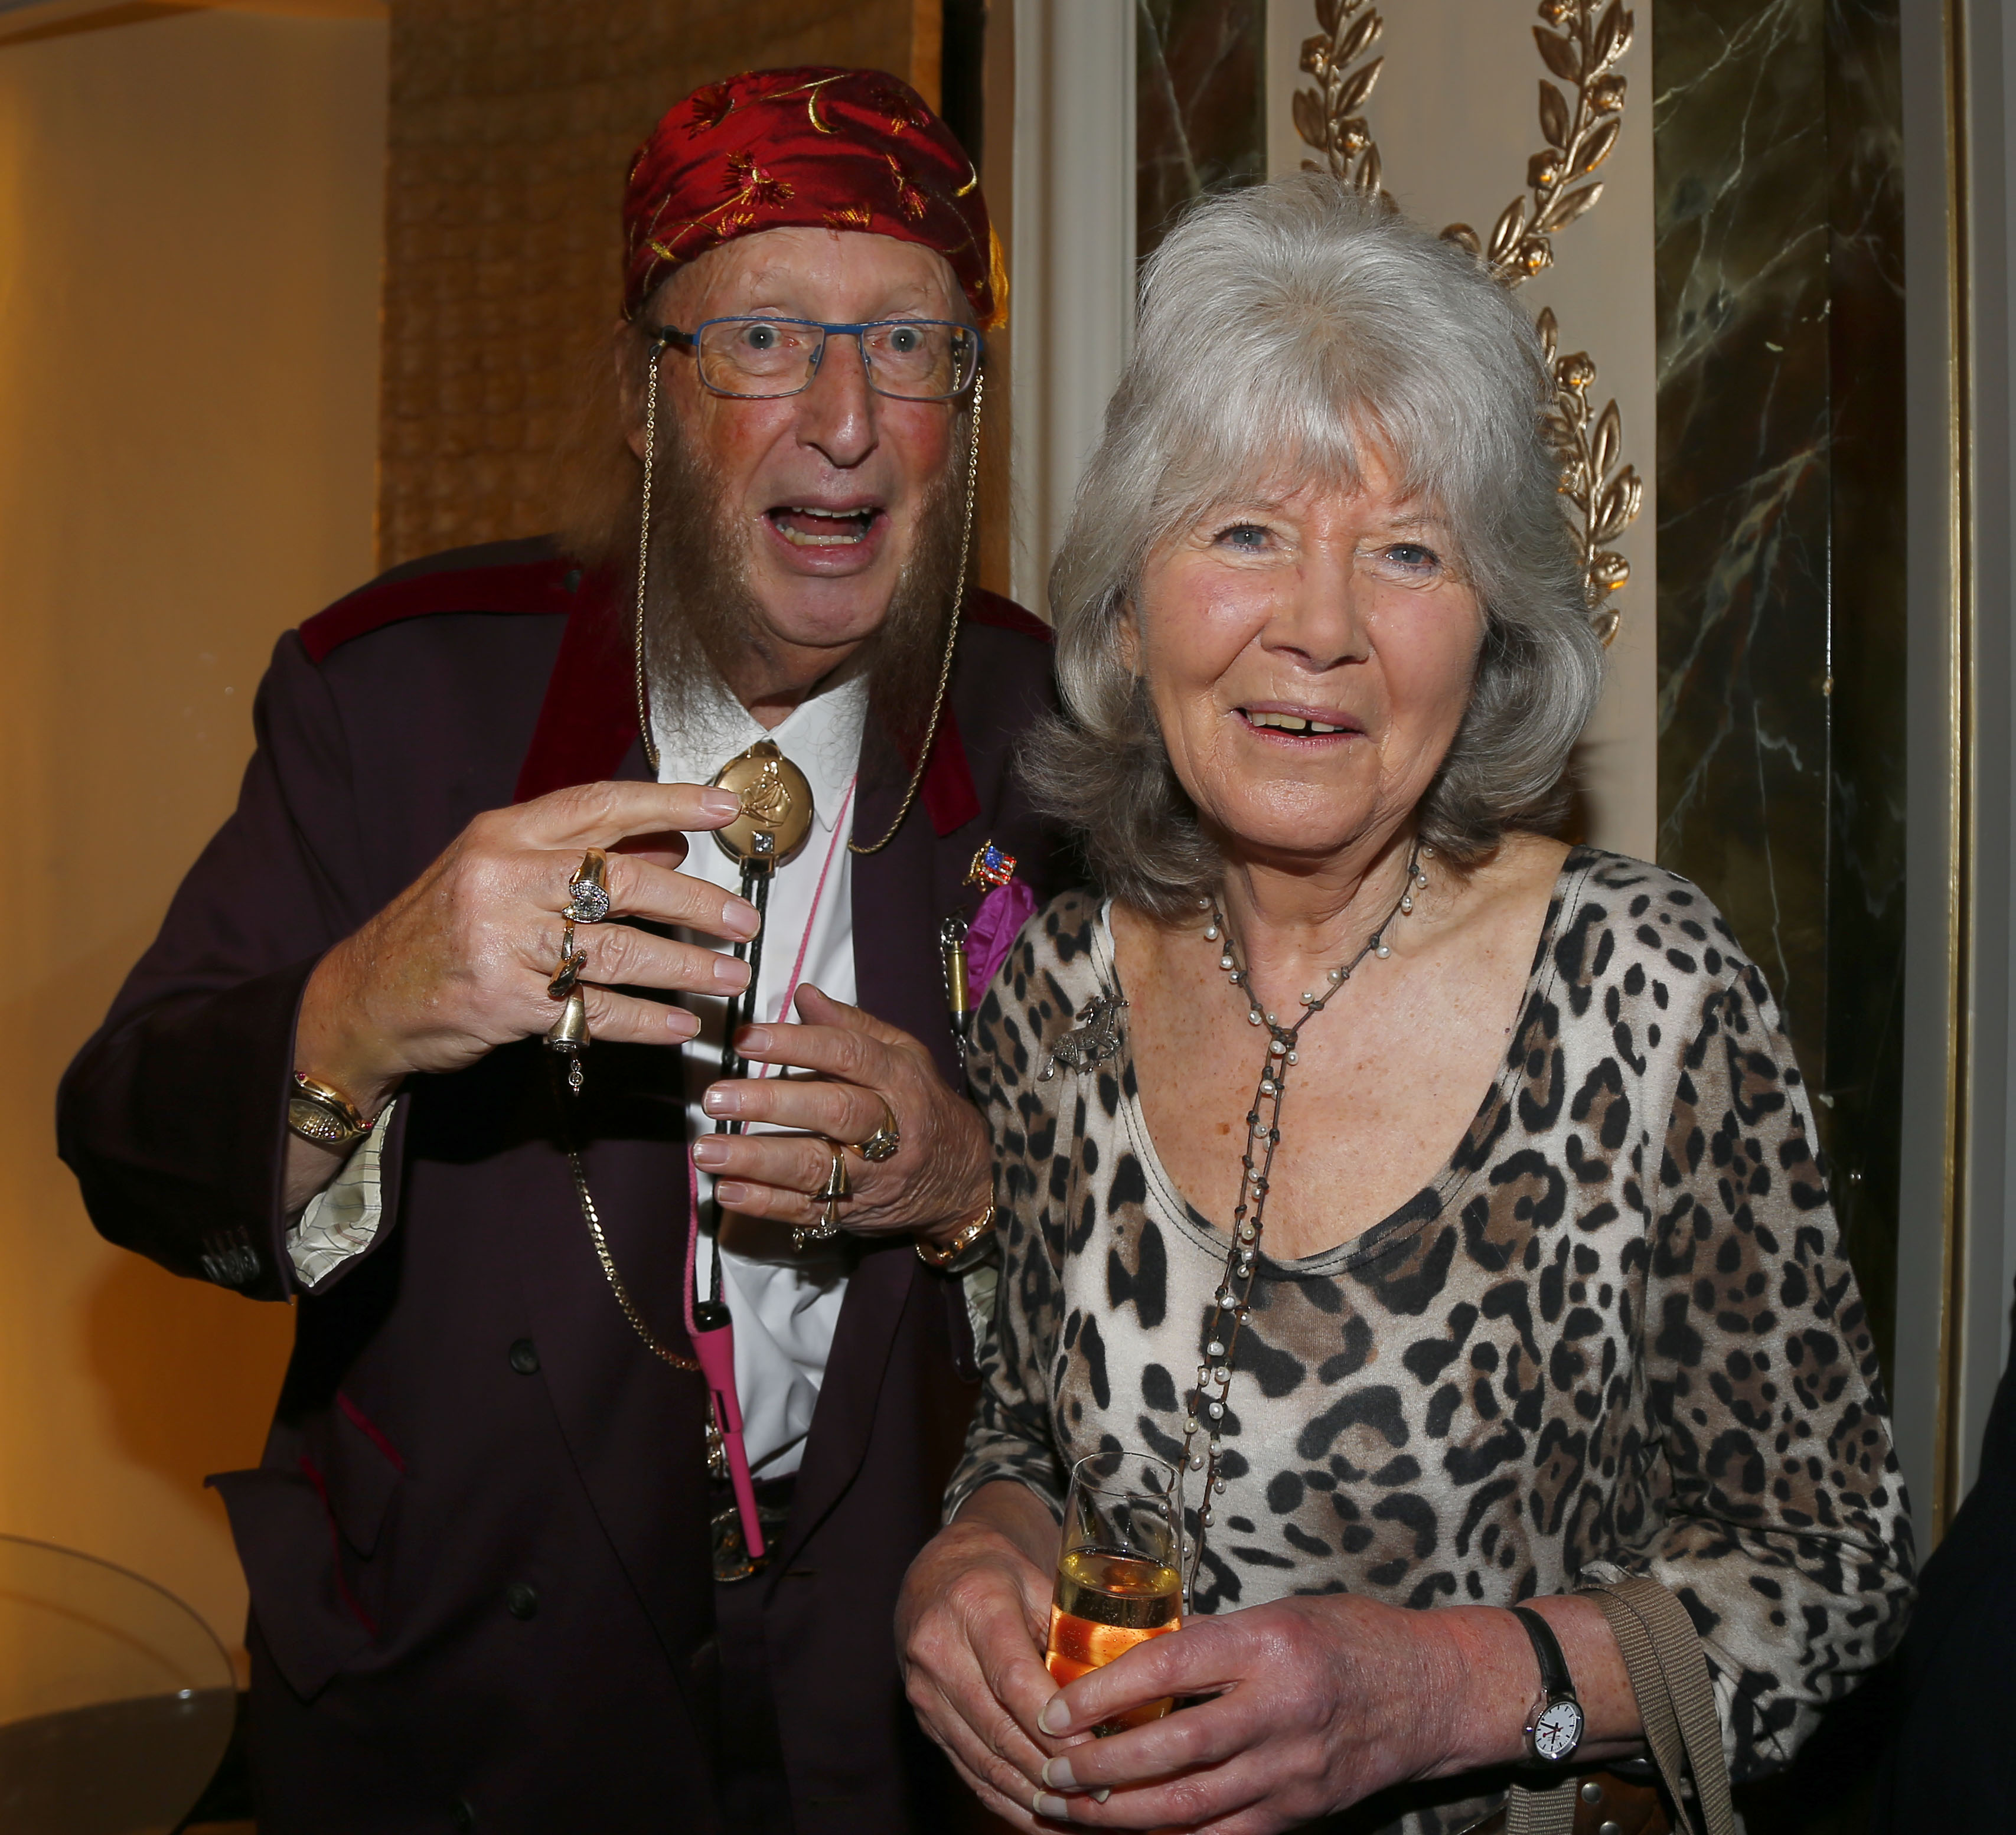 McCririck and author Jilly Cooper pictured in 2015